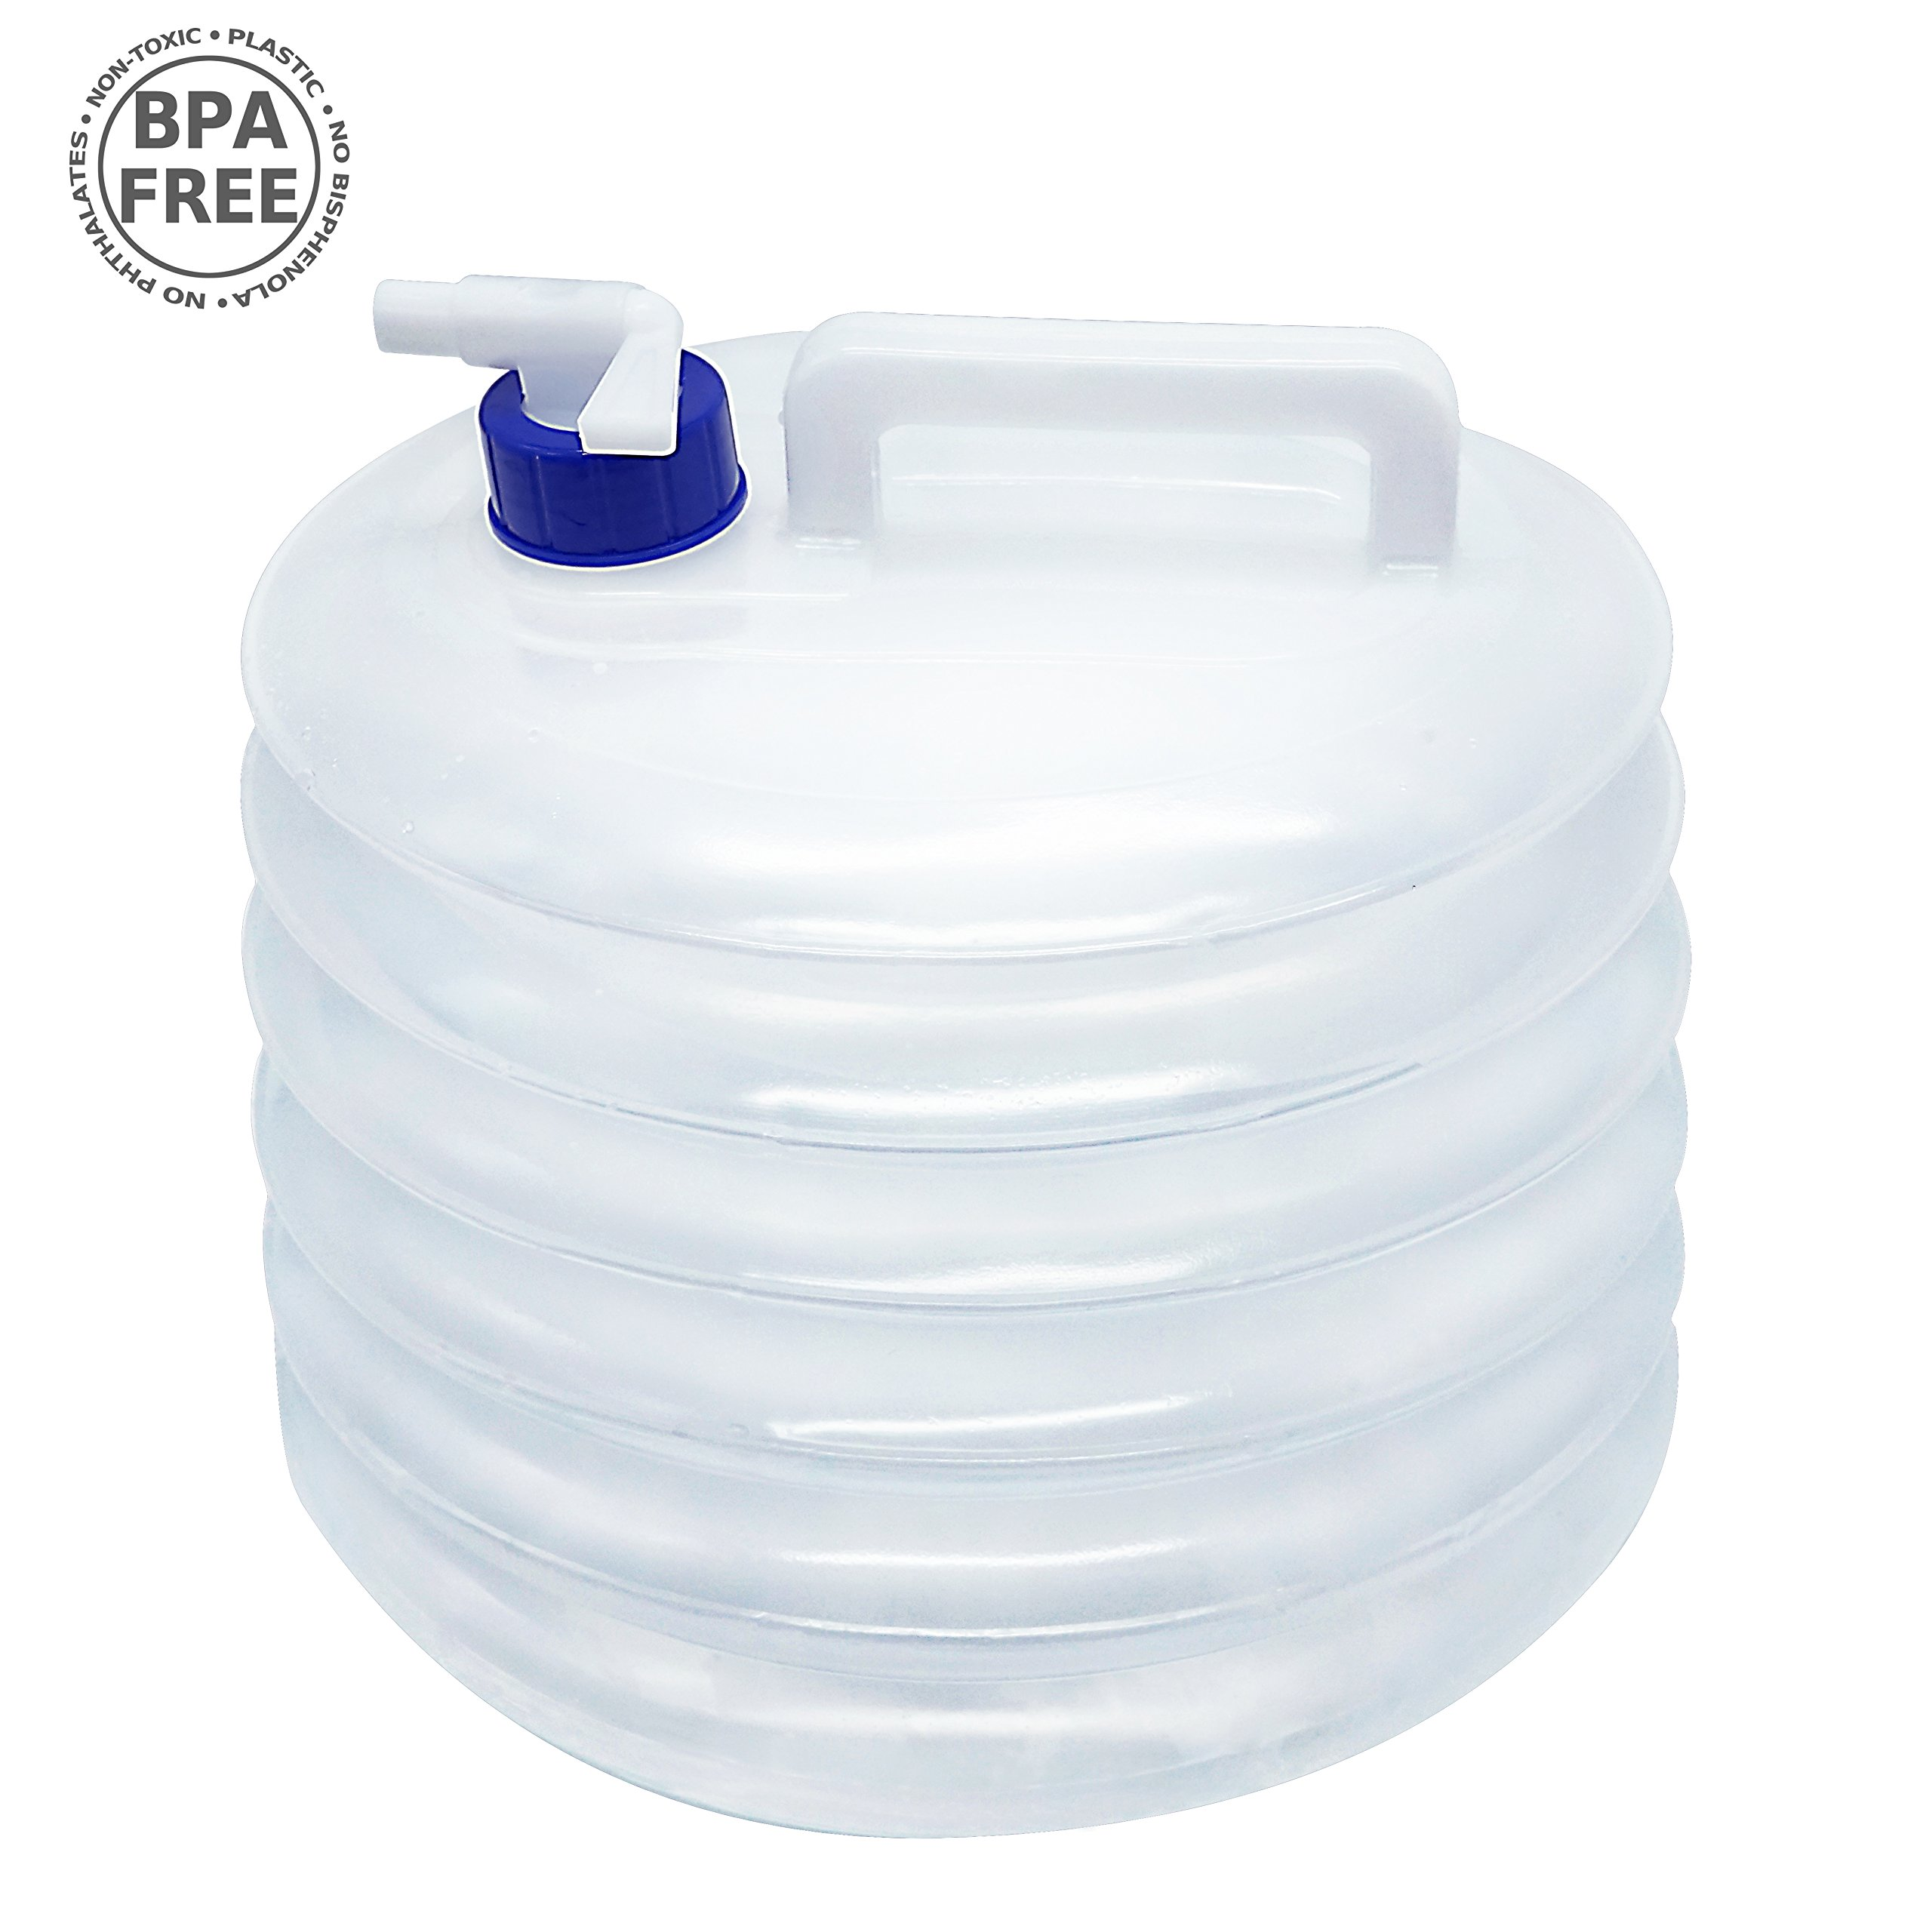 5-15L Collapsible Folding Water Container Bucket Carrier Tap Storage Camping